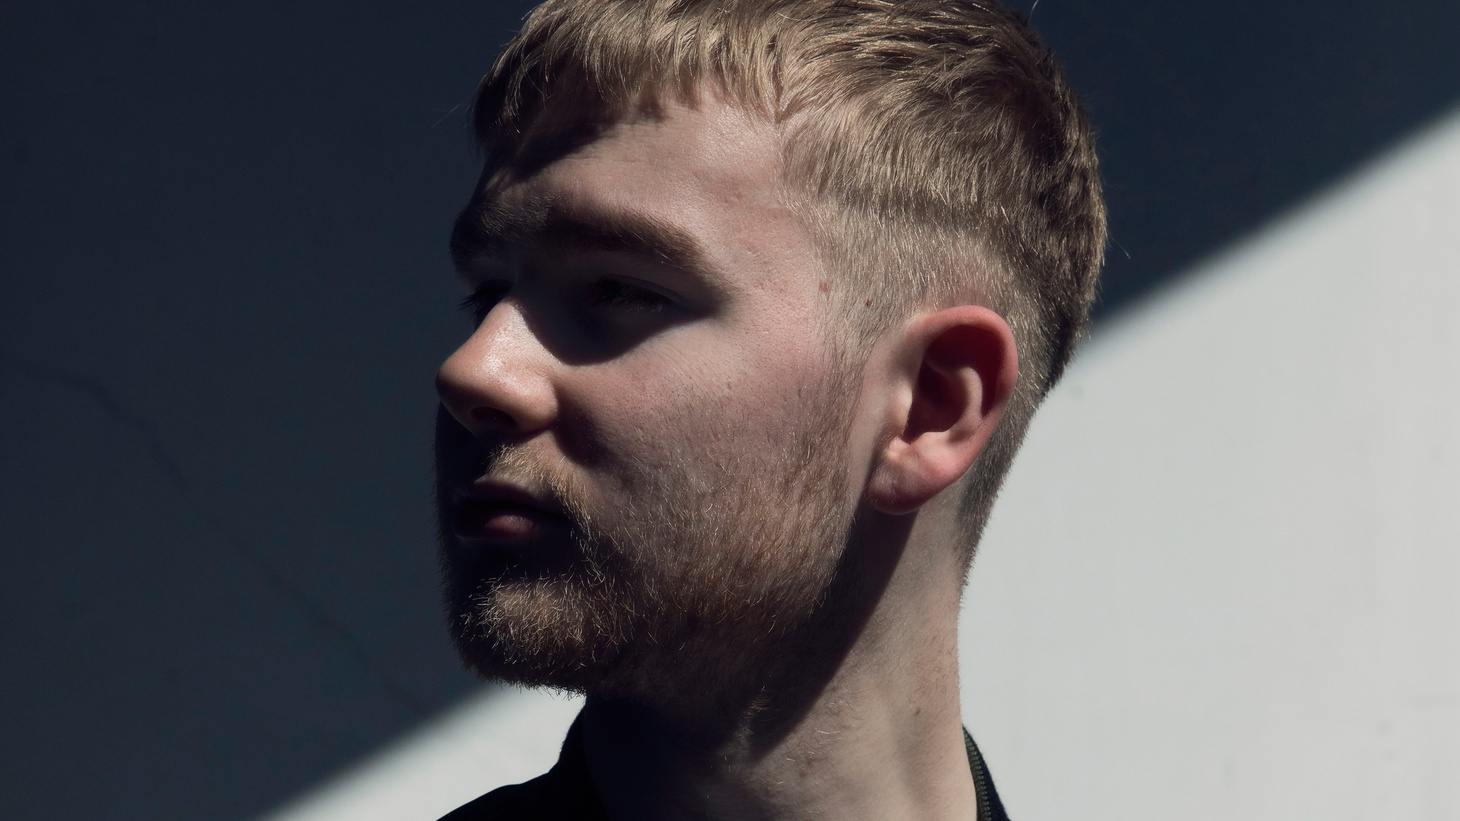 UK producer Mura Masa stepped out from behind the scenes and into the limelight with his star-studded debut album, released last year.